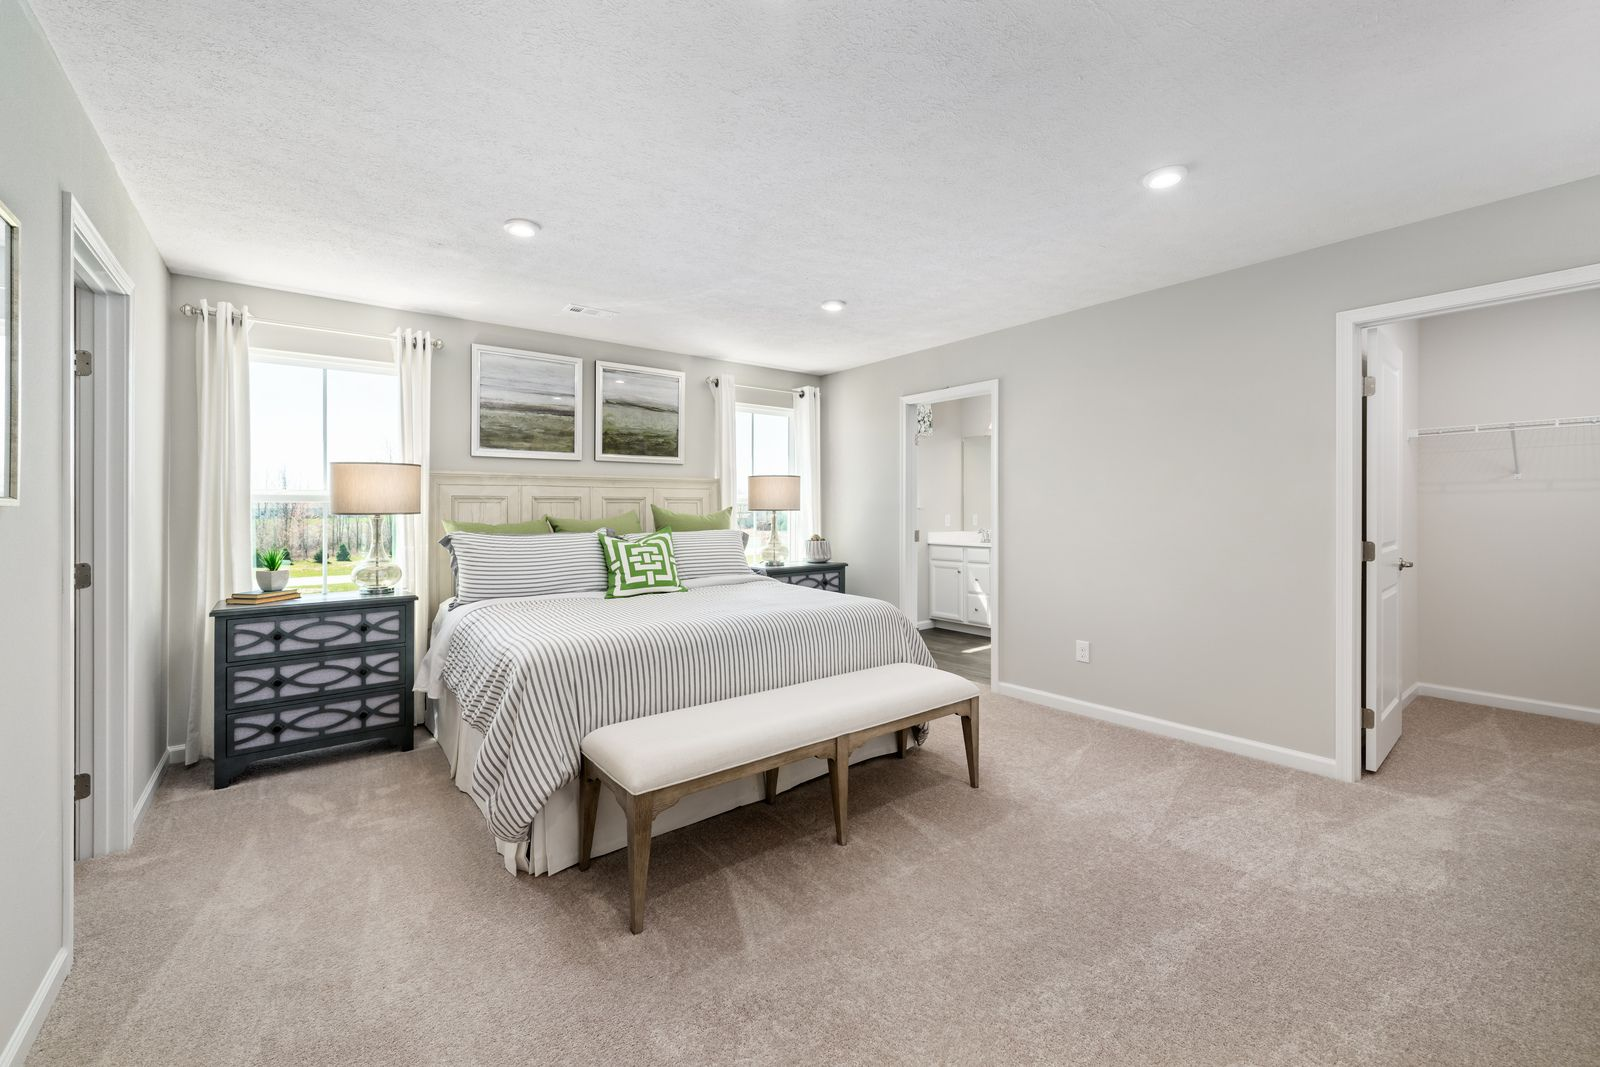 Bedroom featured in the Rosecliff Lux w/ 2' Extension By Ryan Homes in Cleveland, OH